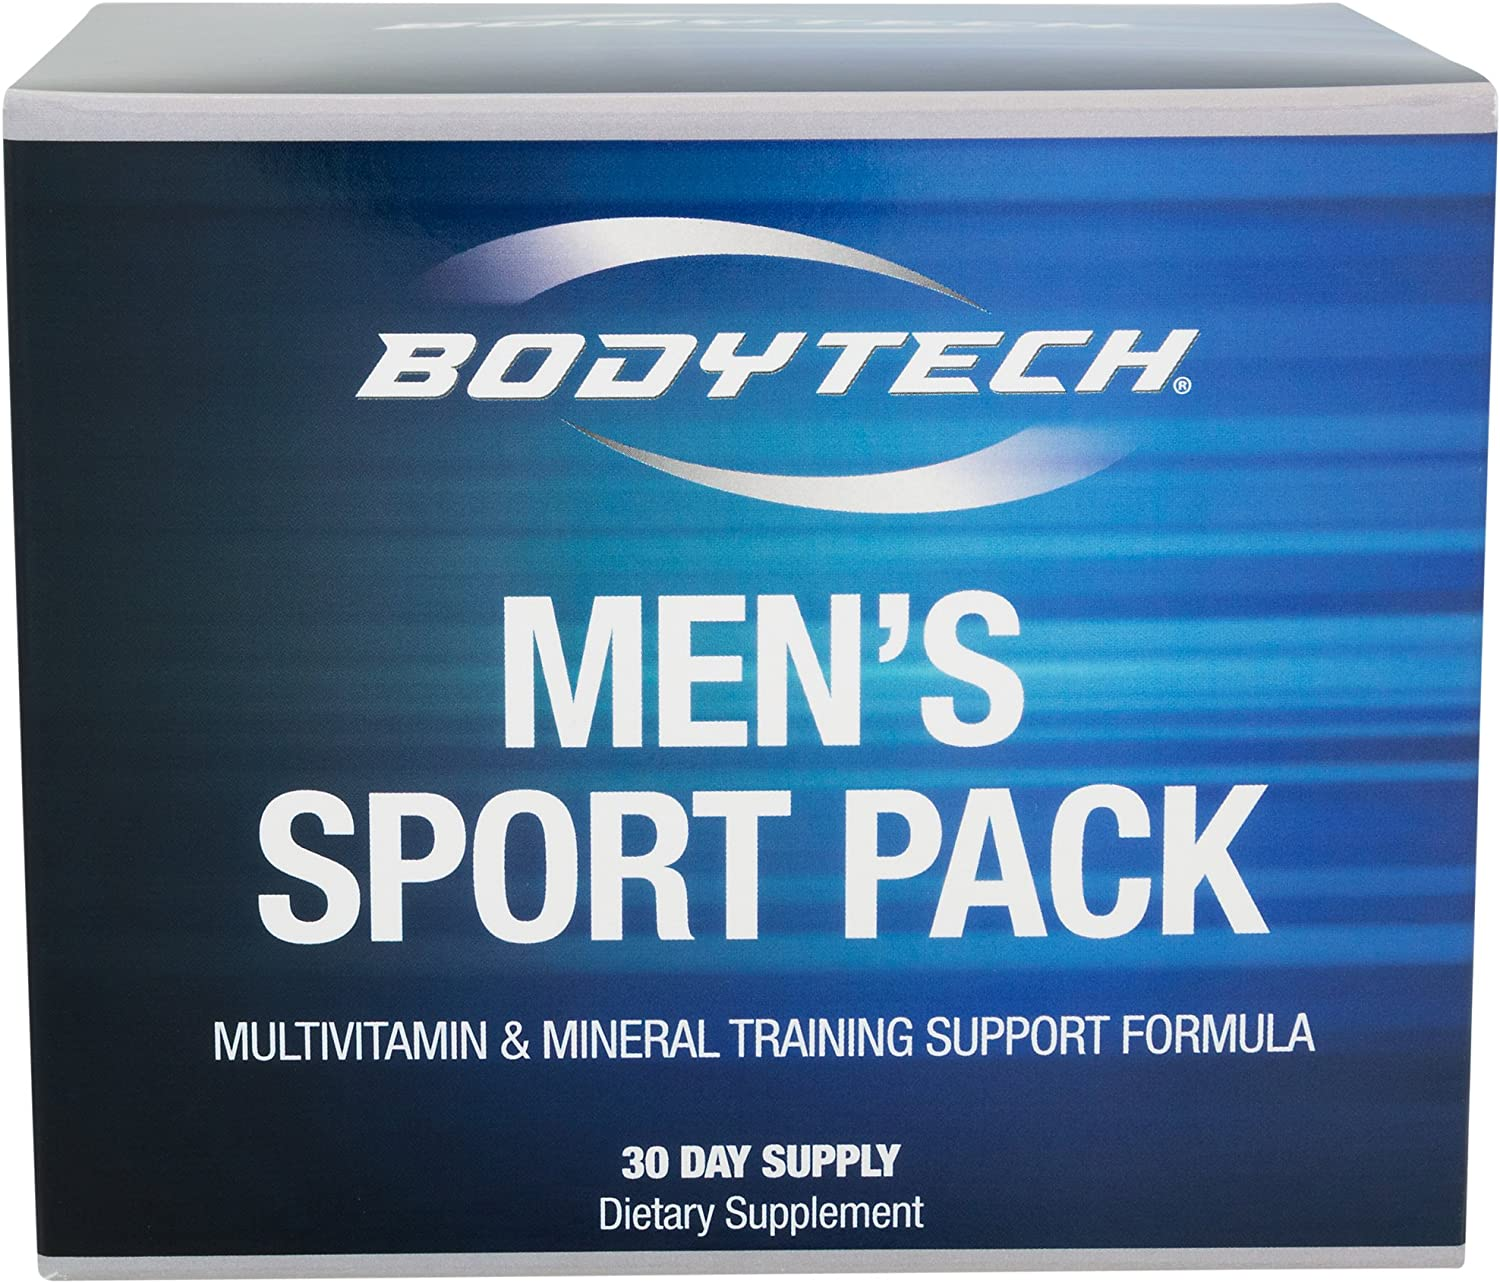 BodyTech Men s Sport Pack Multivitamin Mineral Training Support Formula with Antioxidants Herbs, High Potency Combination 30 Day Supply